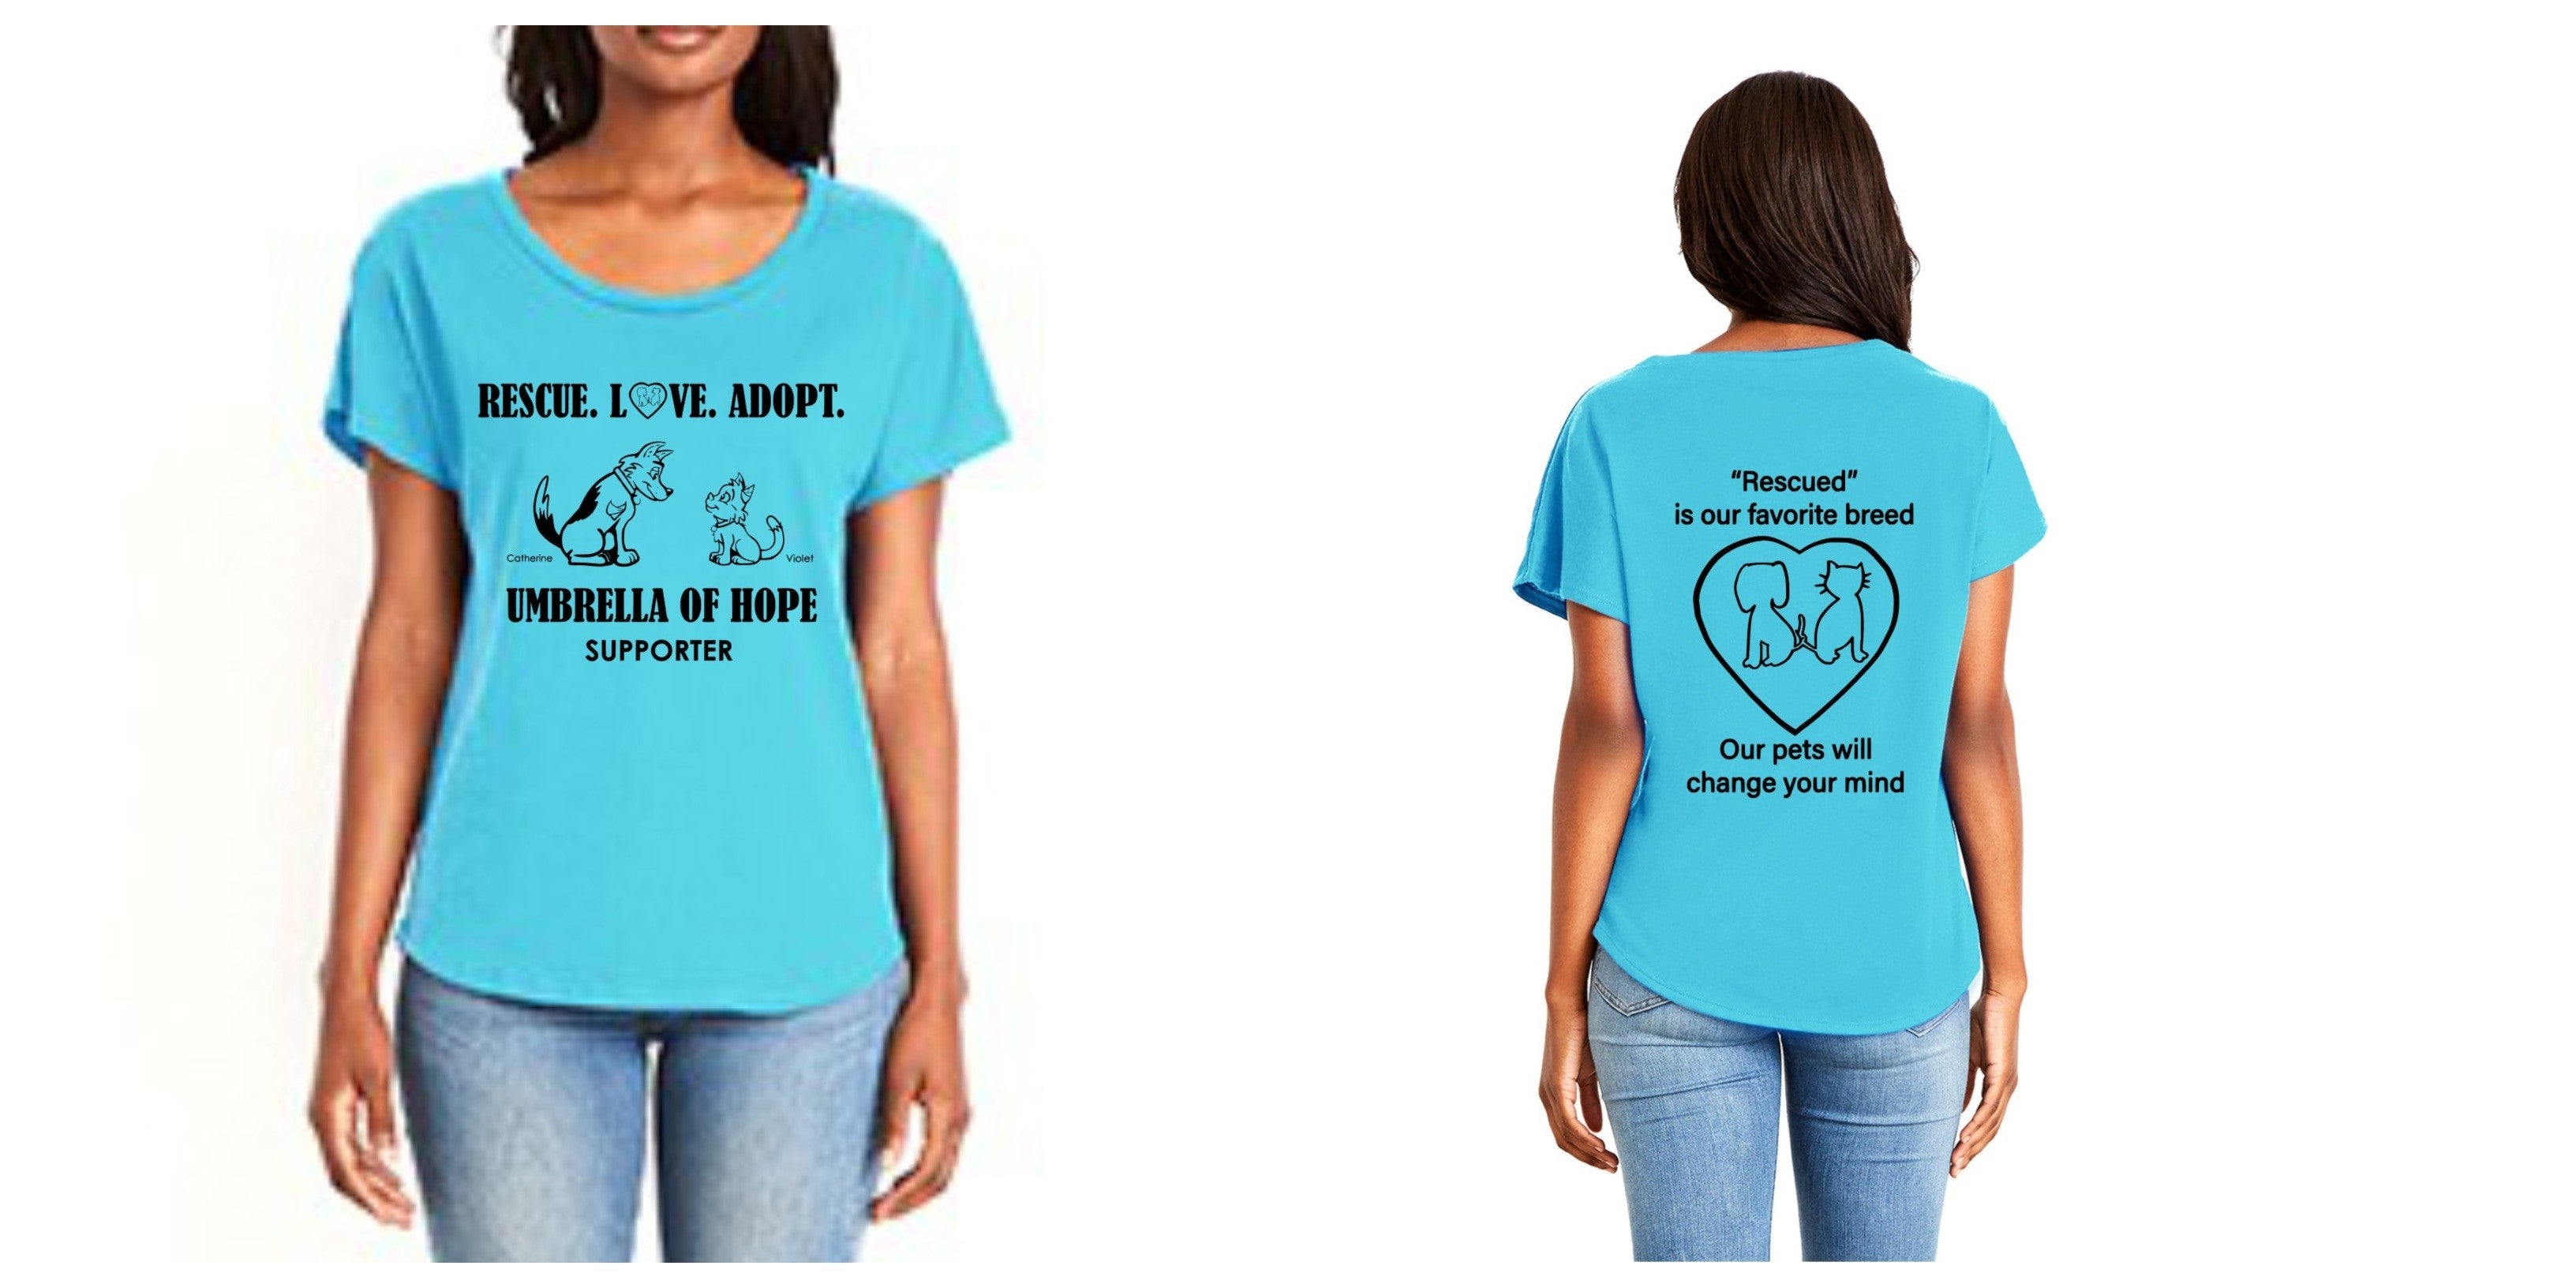 Umbrella of Hope Rescue - Ladies Tee - Ruff Life Rescue Wear